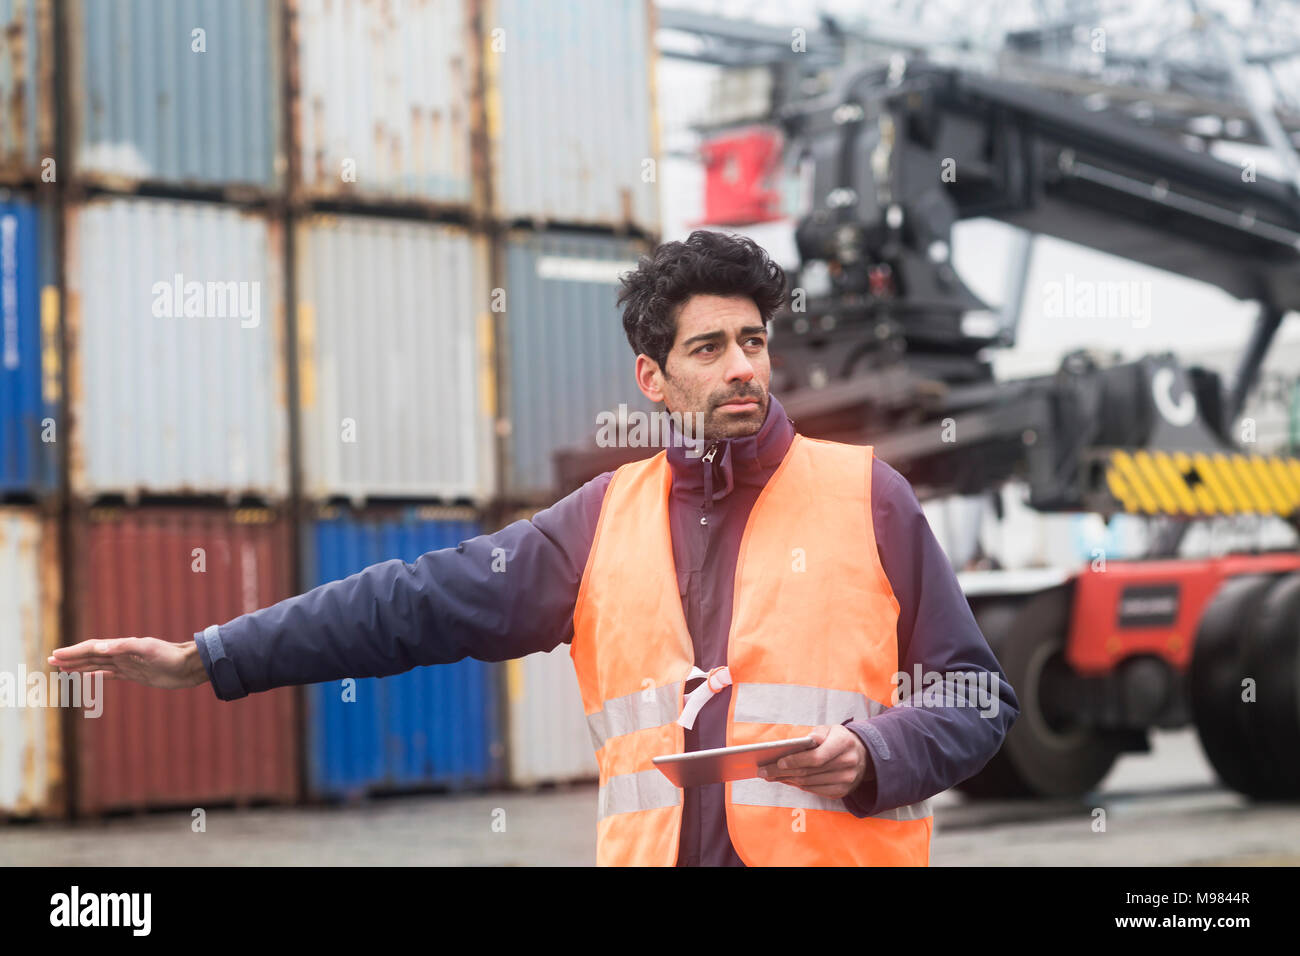 Man with tablet wearing reflective vest at container port - Stock Image